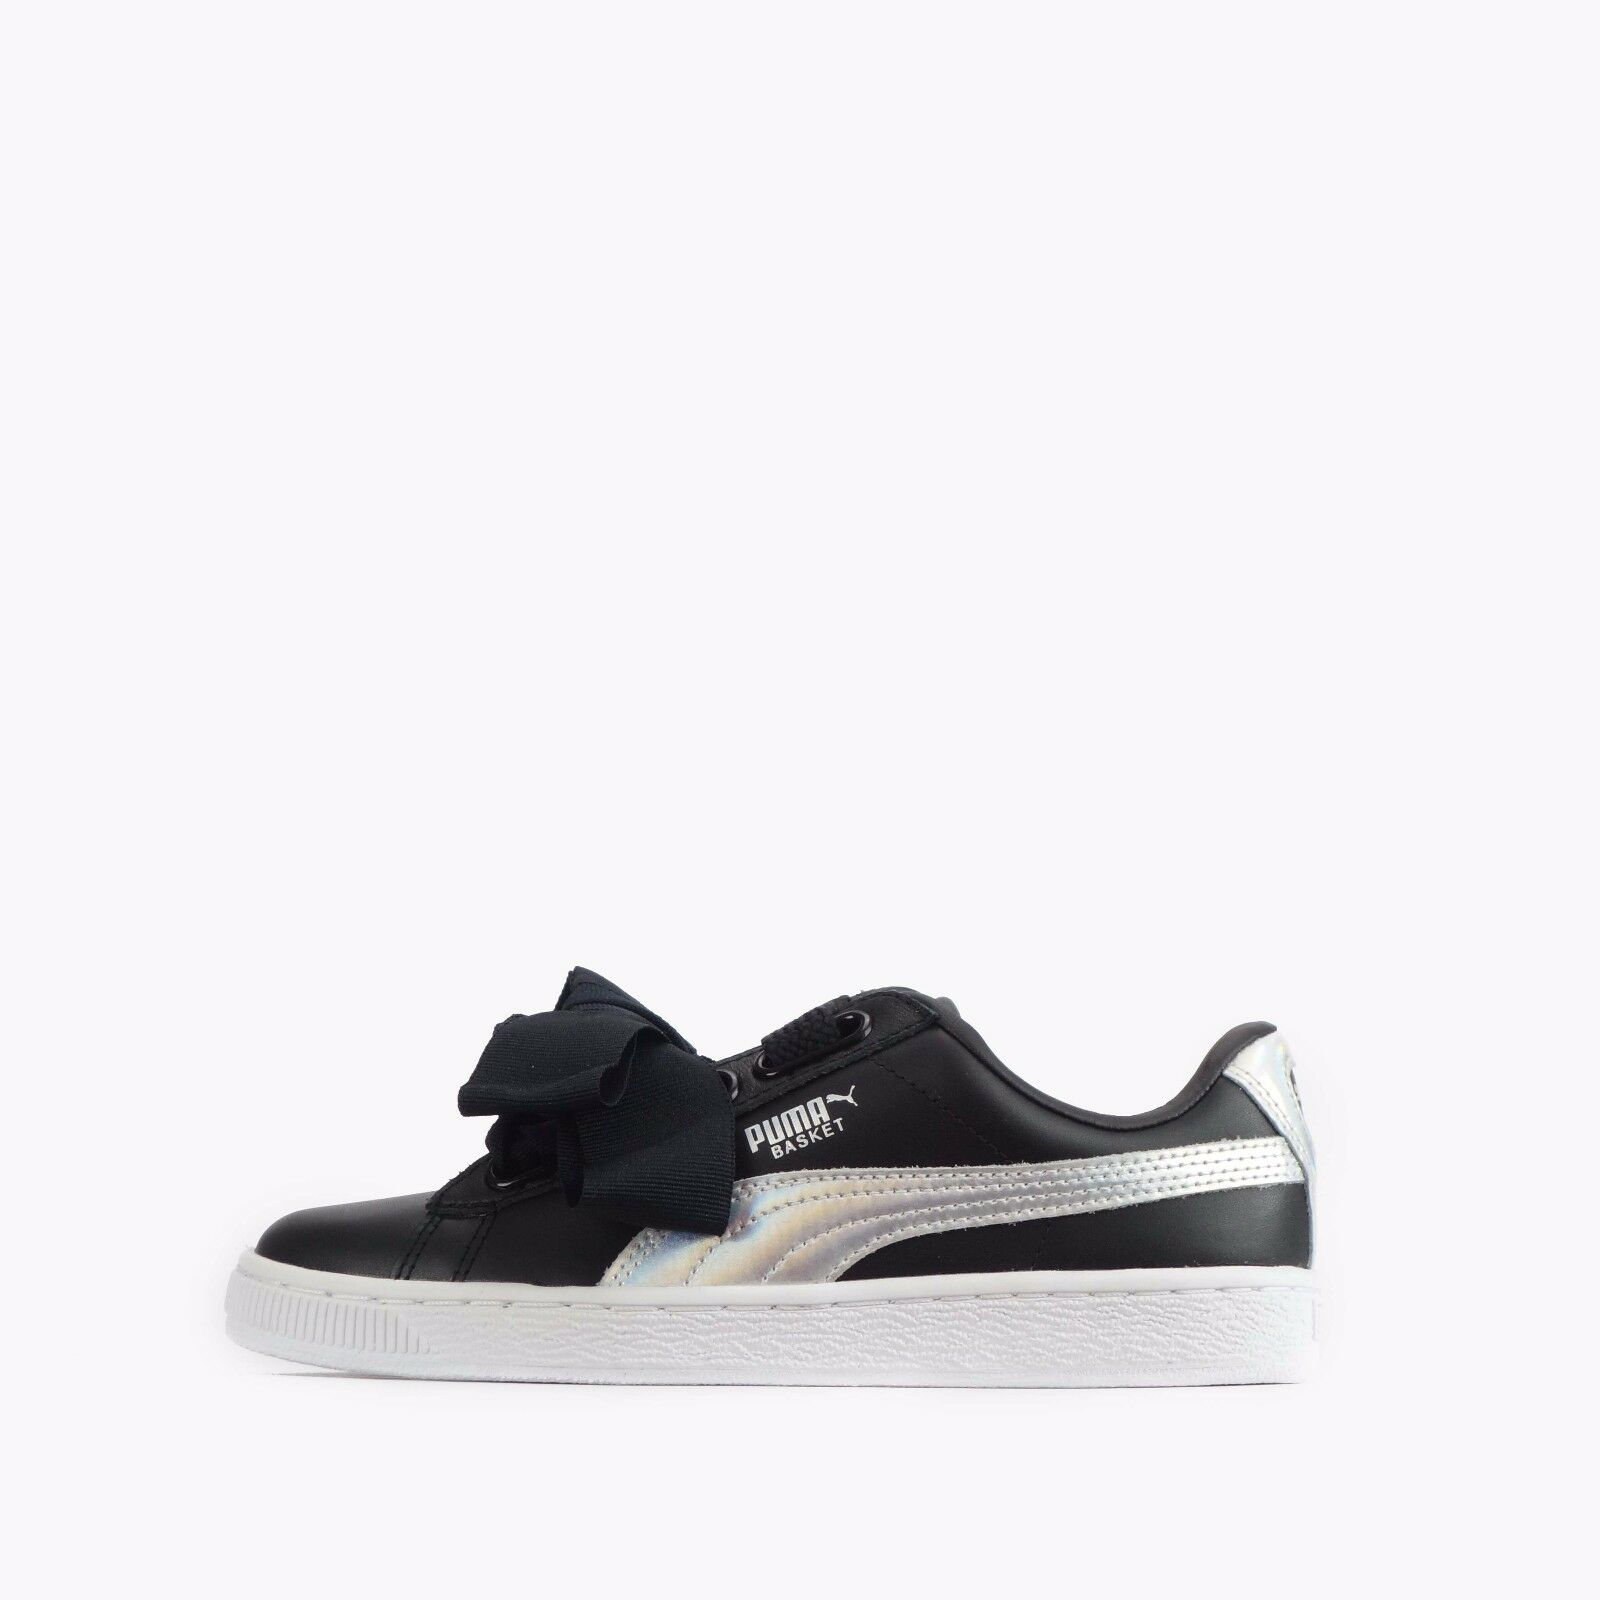 Puma Puma Puma Basket Heart Explosive Women's shoes Black Silver acff4c